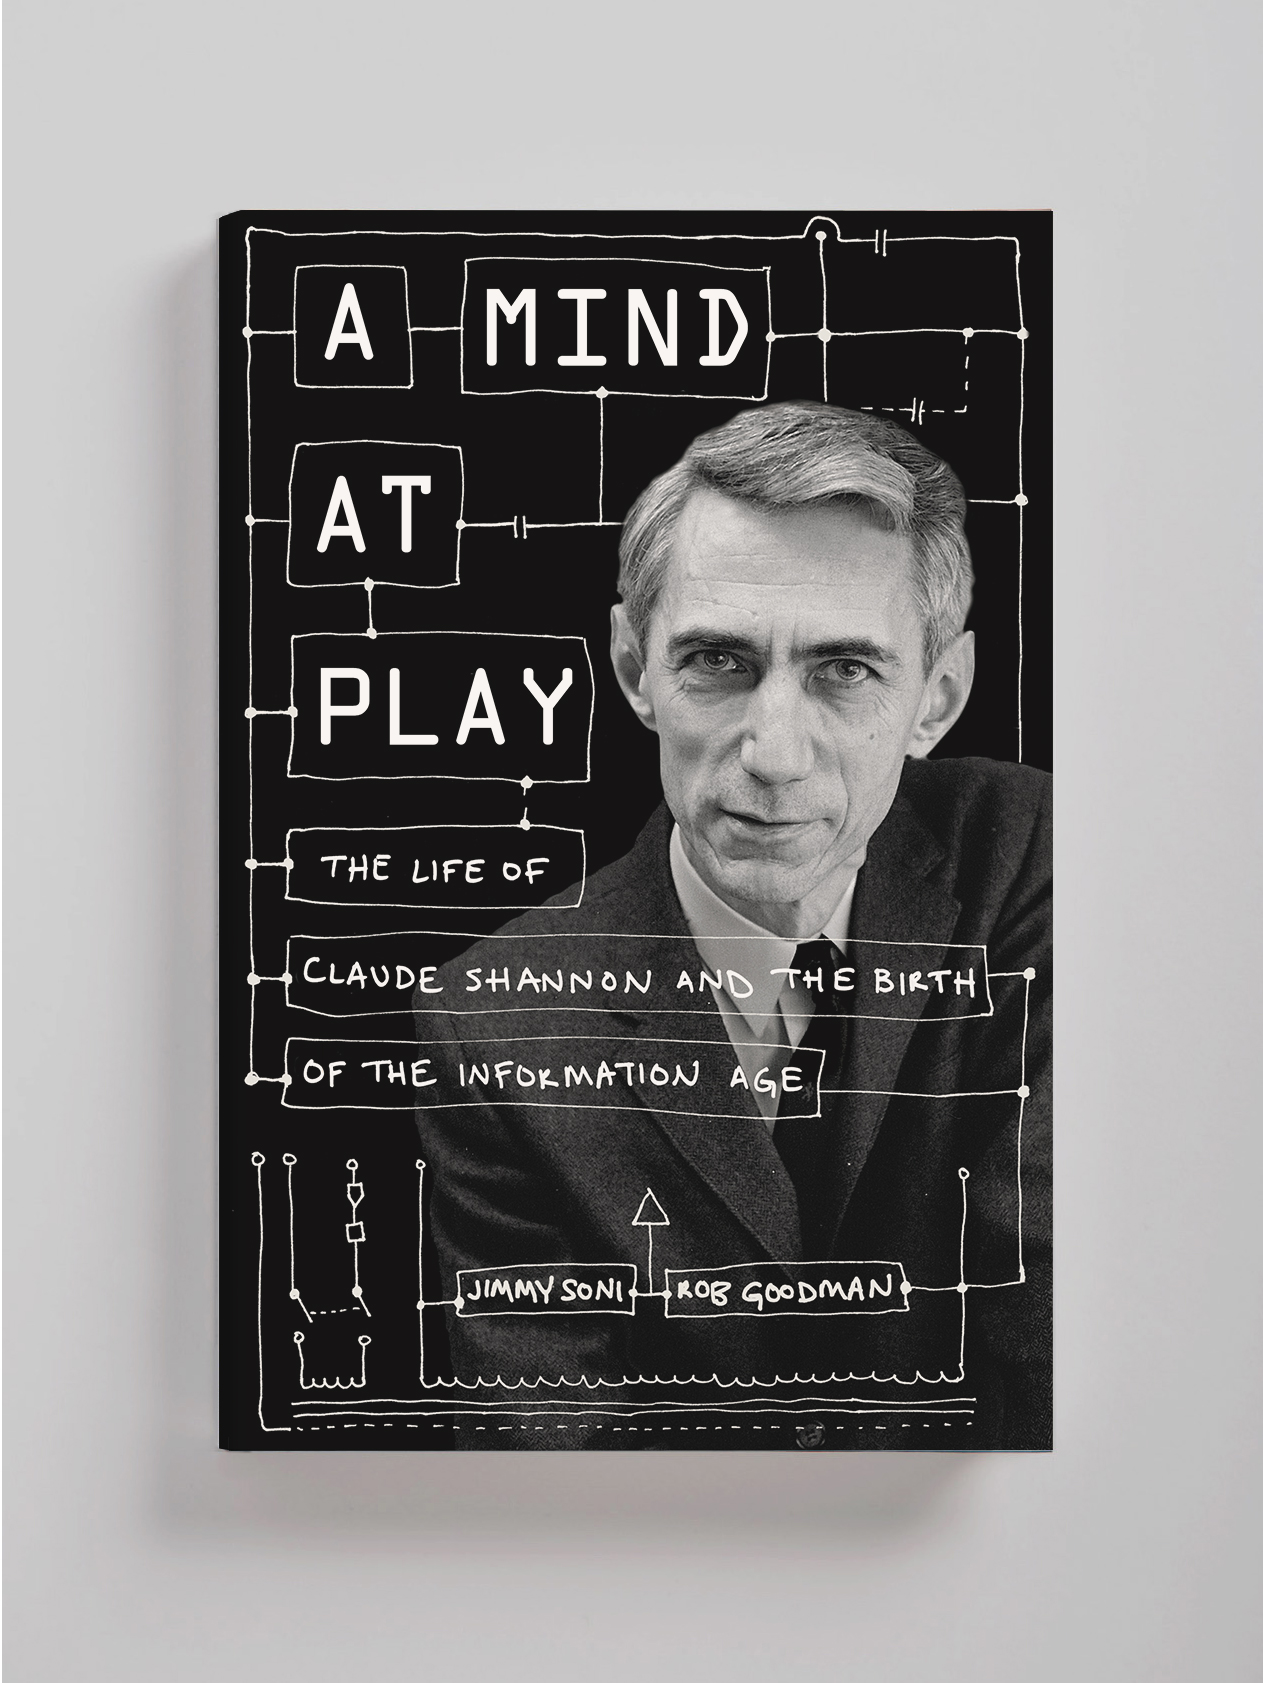 A Mind At Play killed cover